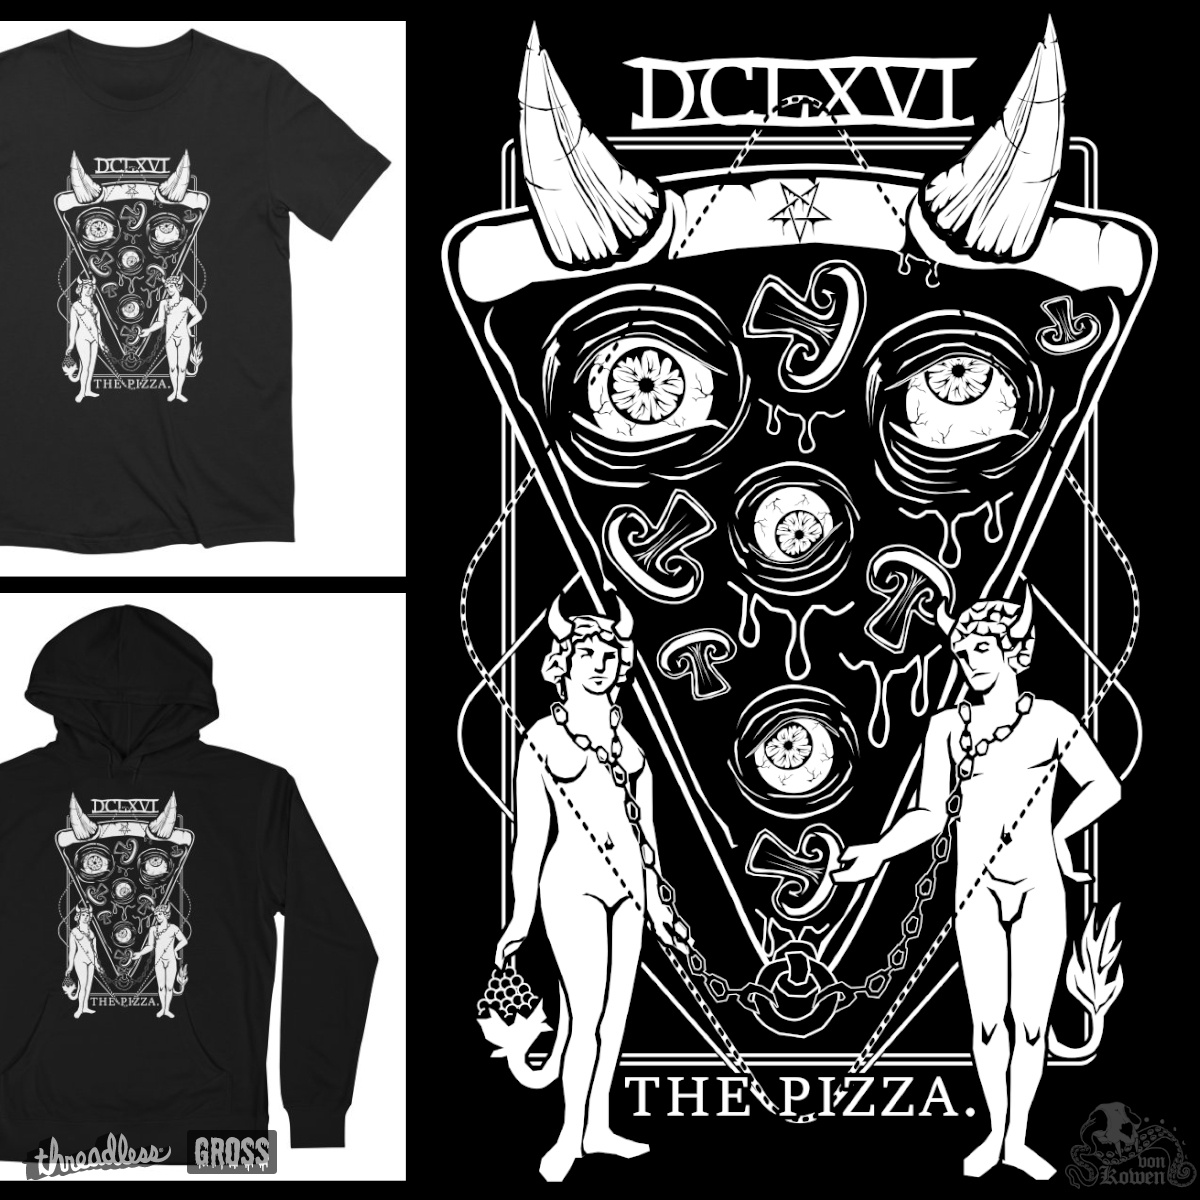 The Pizza, a cool t-shirt design